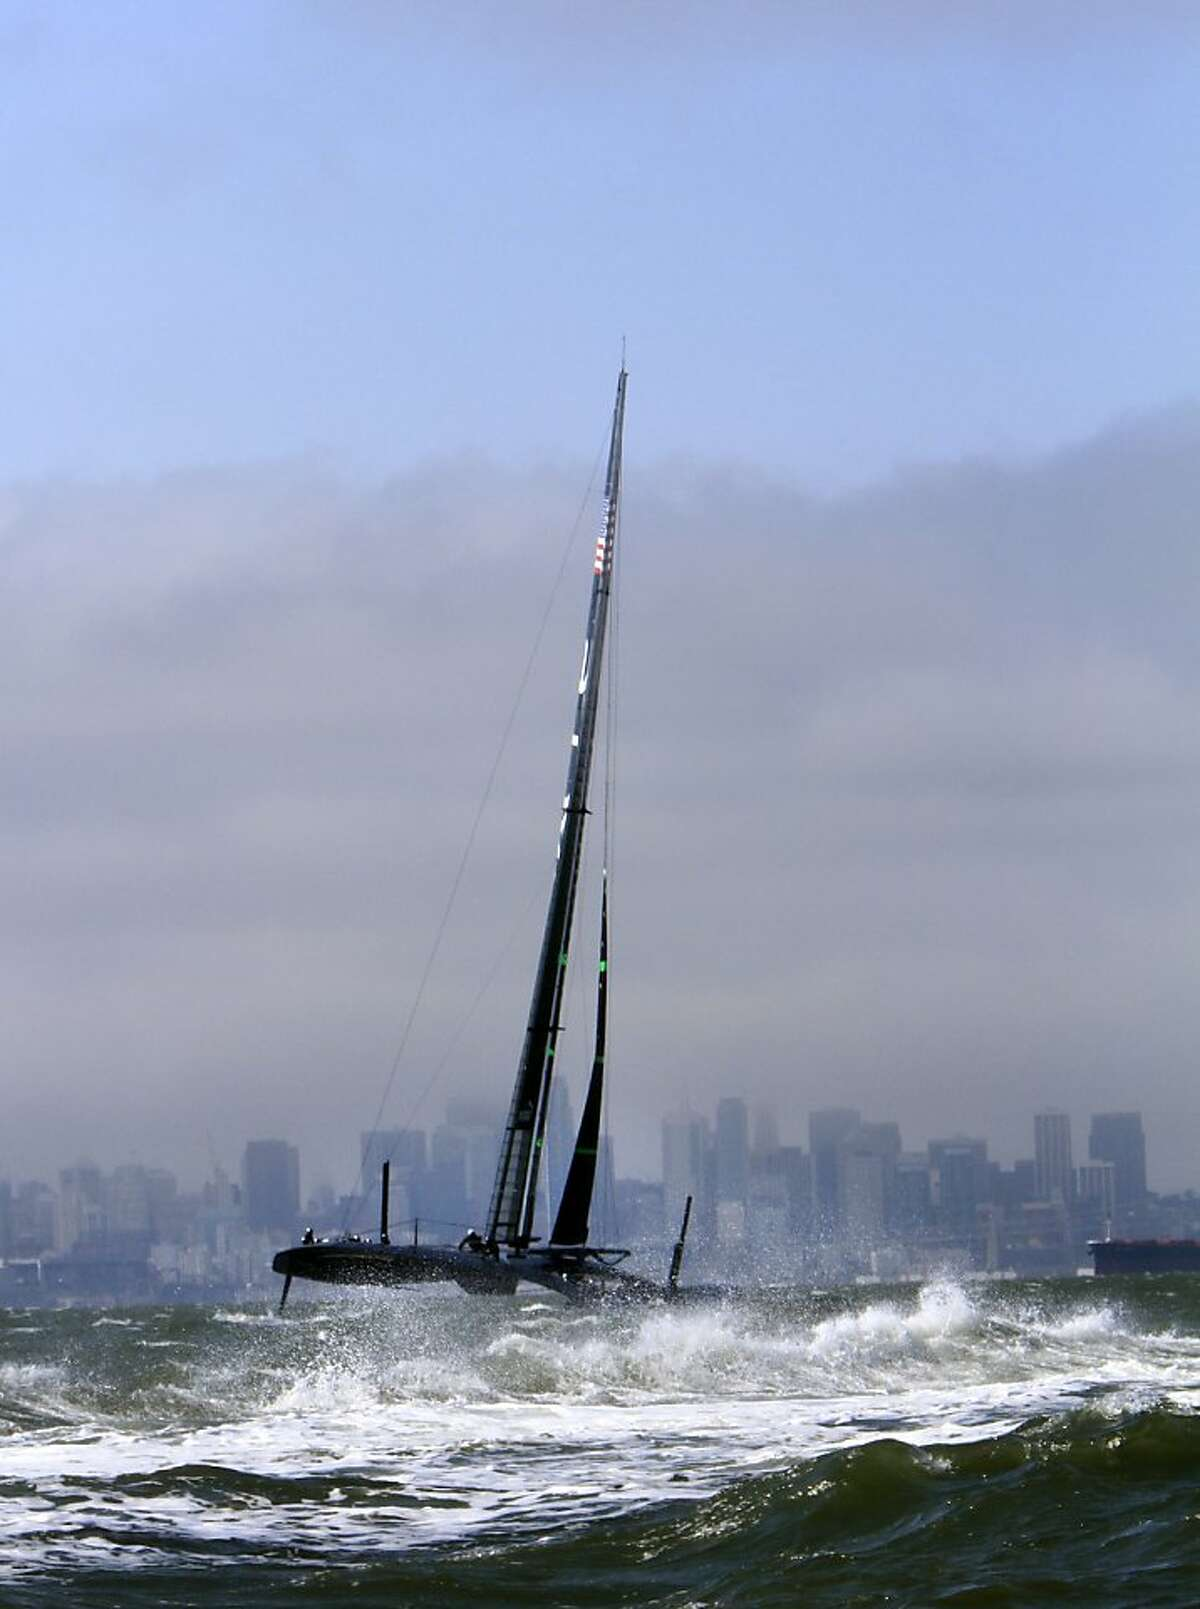 The Oracle team takes the AC72, a new 72-foot catamaran, out for its third test on the water in the bay in San Francisco, Calif., Friday, September 28, 2012.